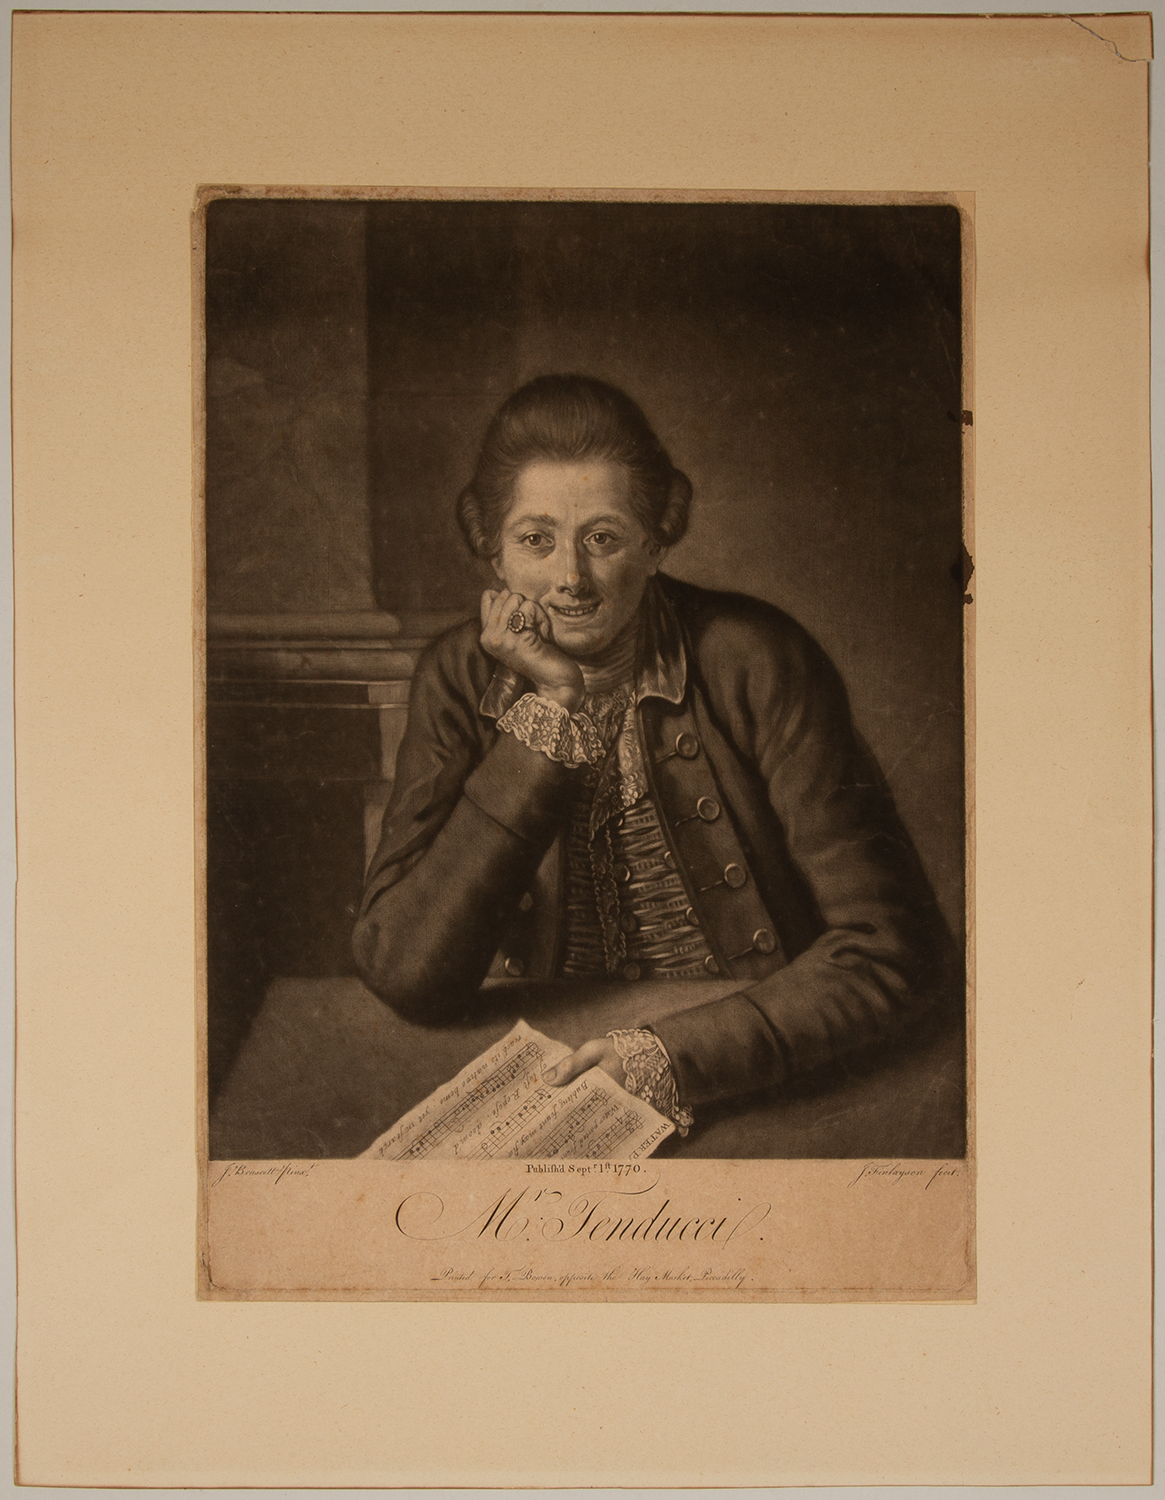 """Mr. Tenducci."" Fine large mezzotint engraving of the noted Italian soprano castrato and composer..."